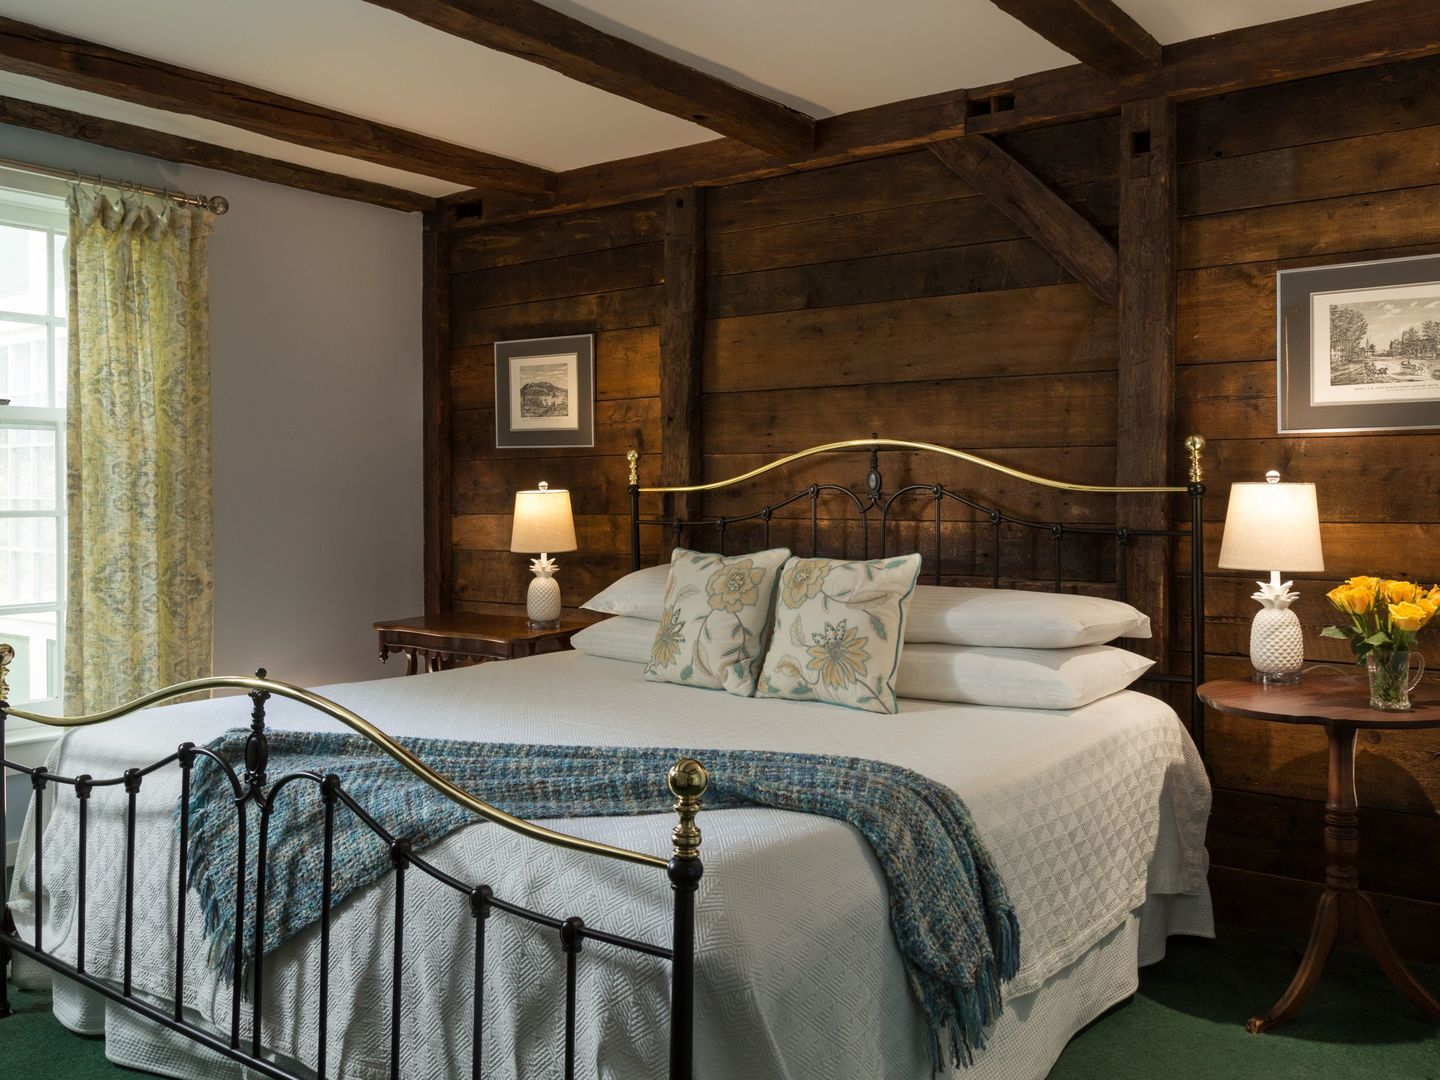 A bedroom with a large bed in a room at Chesterfield Inn.